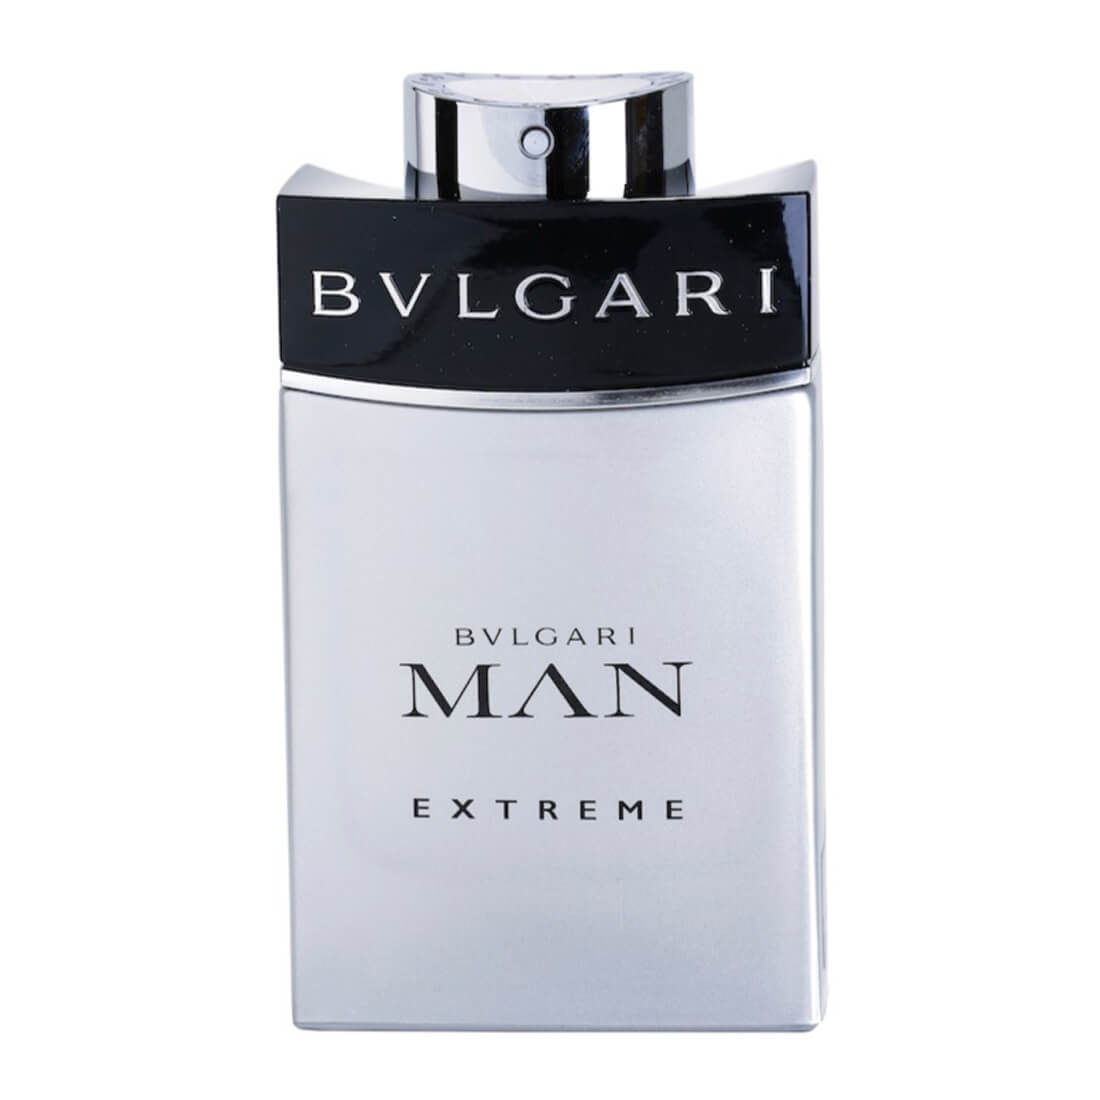 Bvlgari Man Pocket Spray Collection Gift Set Pack of 3